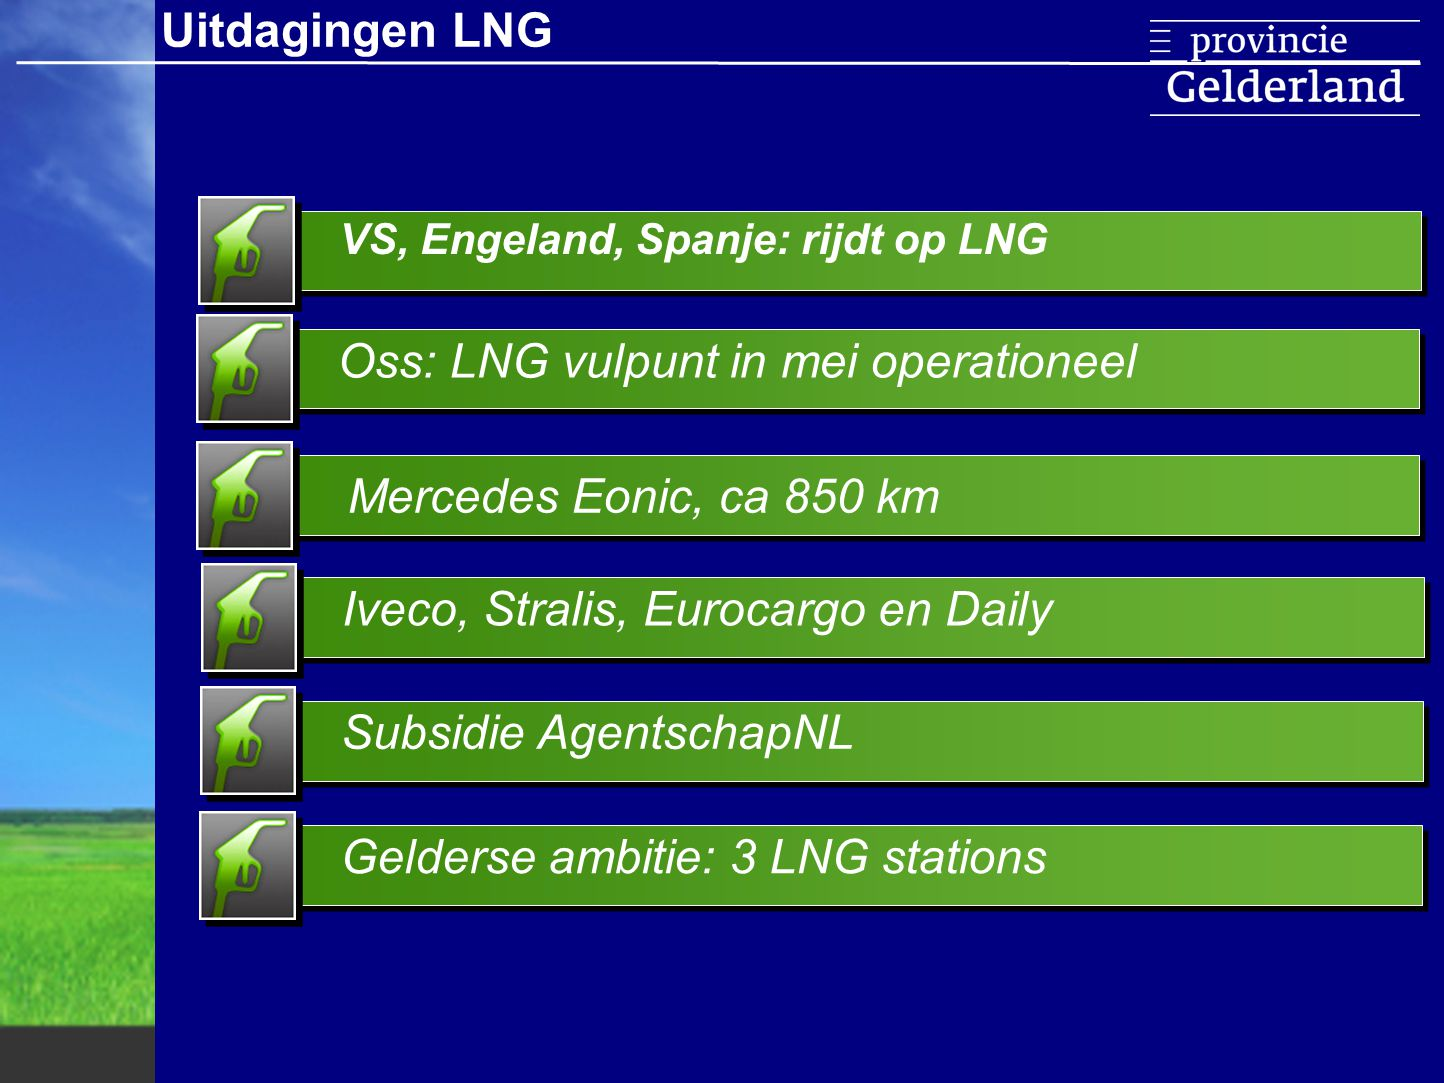 Oss: LNG vulpunt in mei operationeel